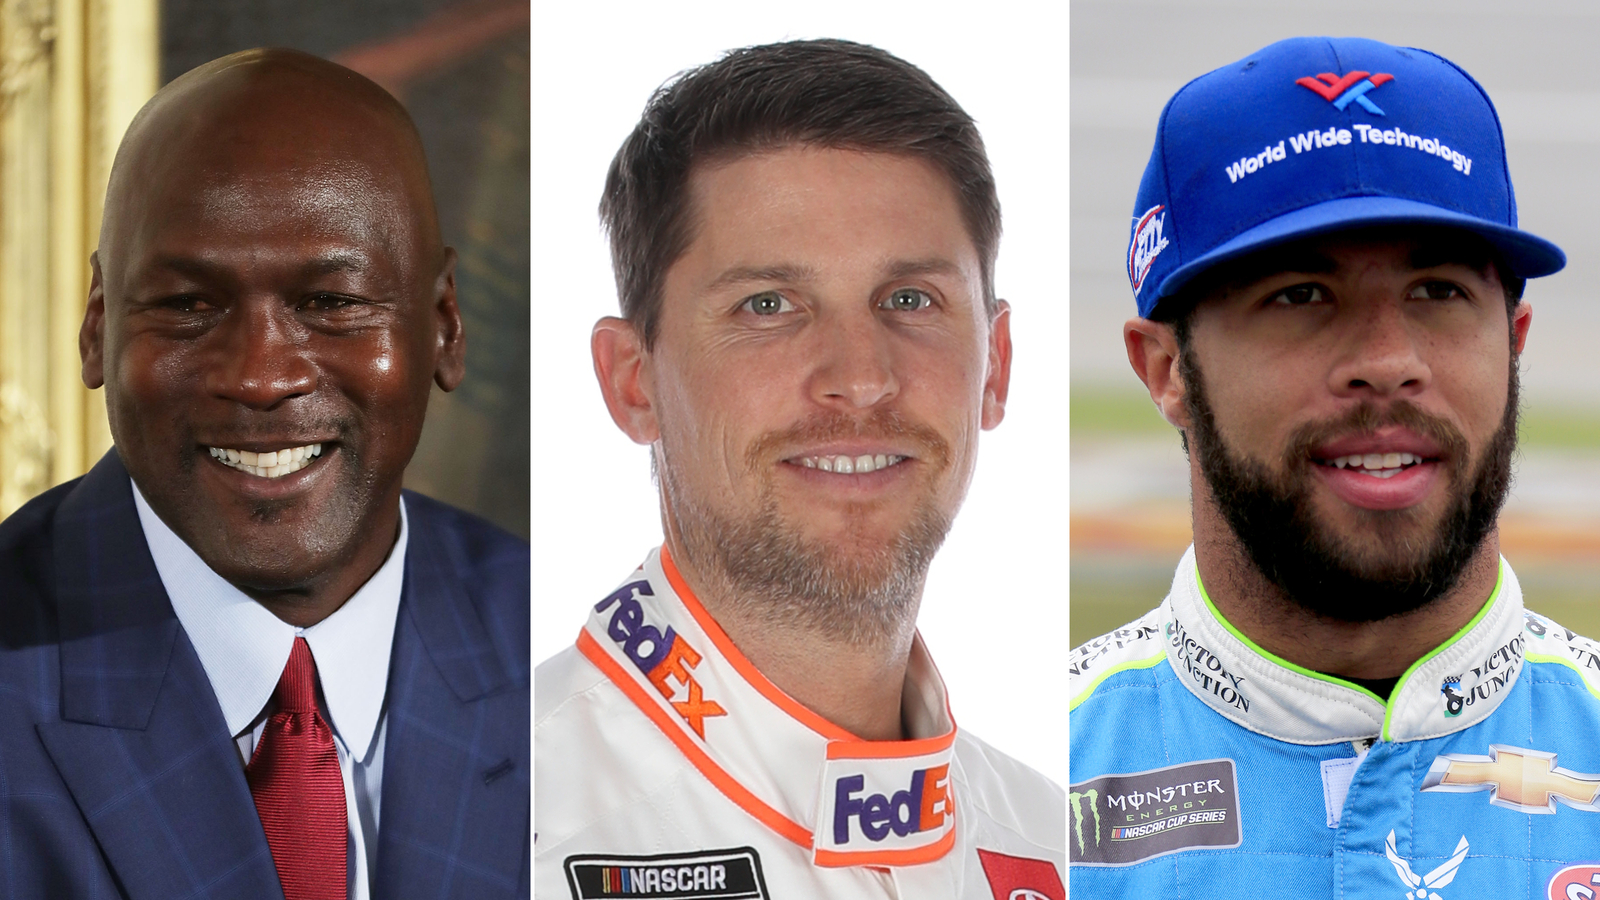 Michael Jordan and Denny Hamlin team up to start NASCAR team, with Bubba Wallace as a driver